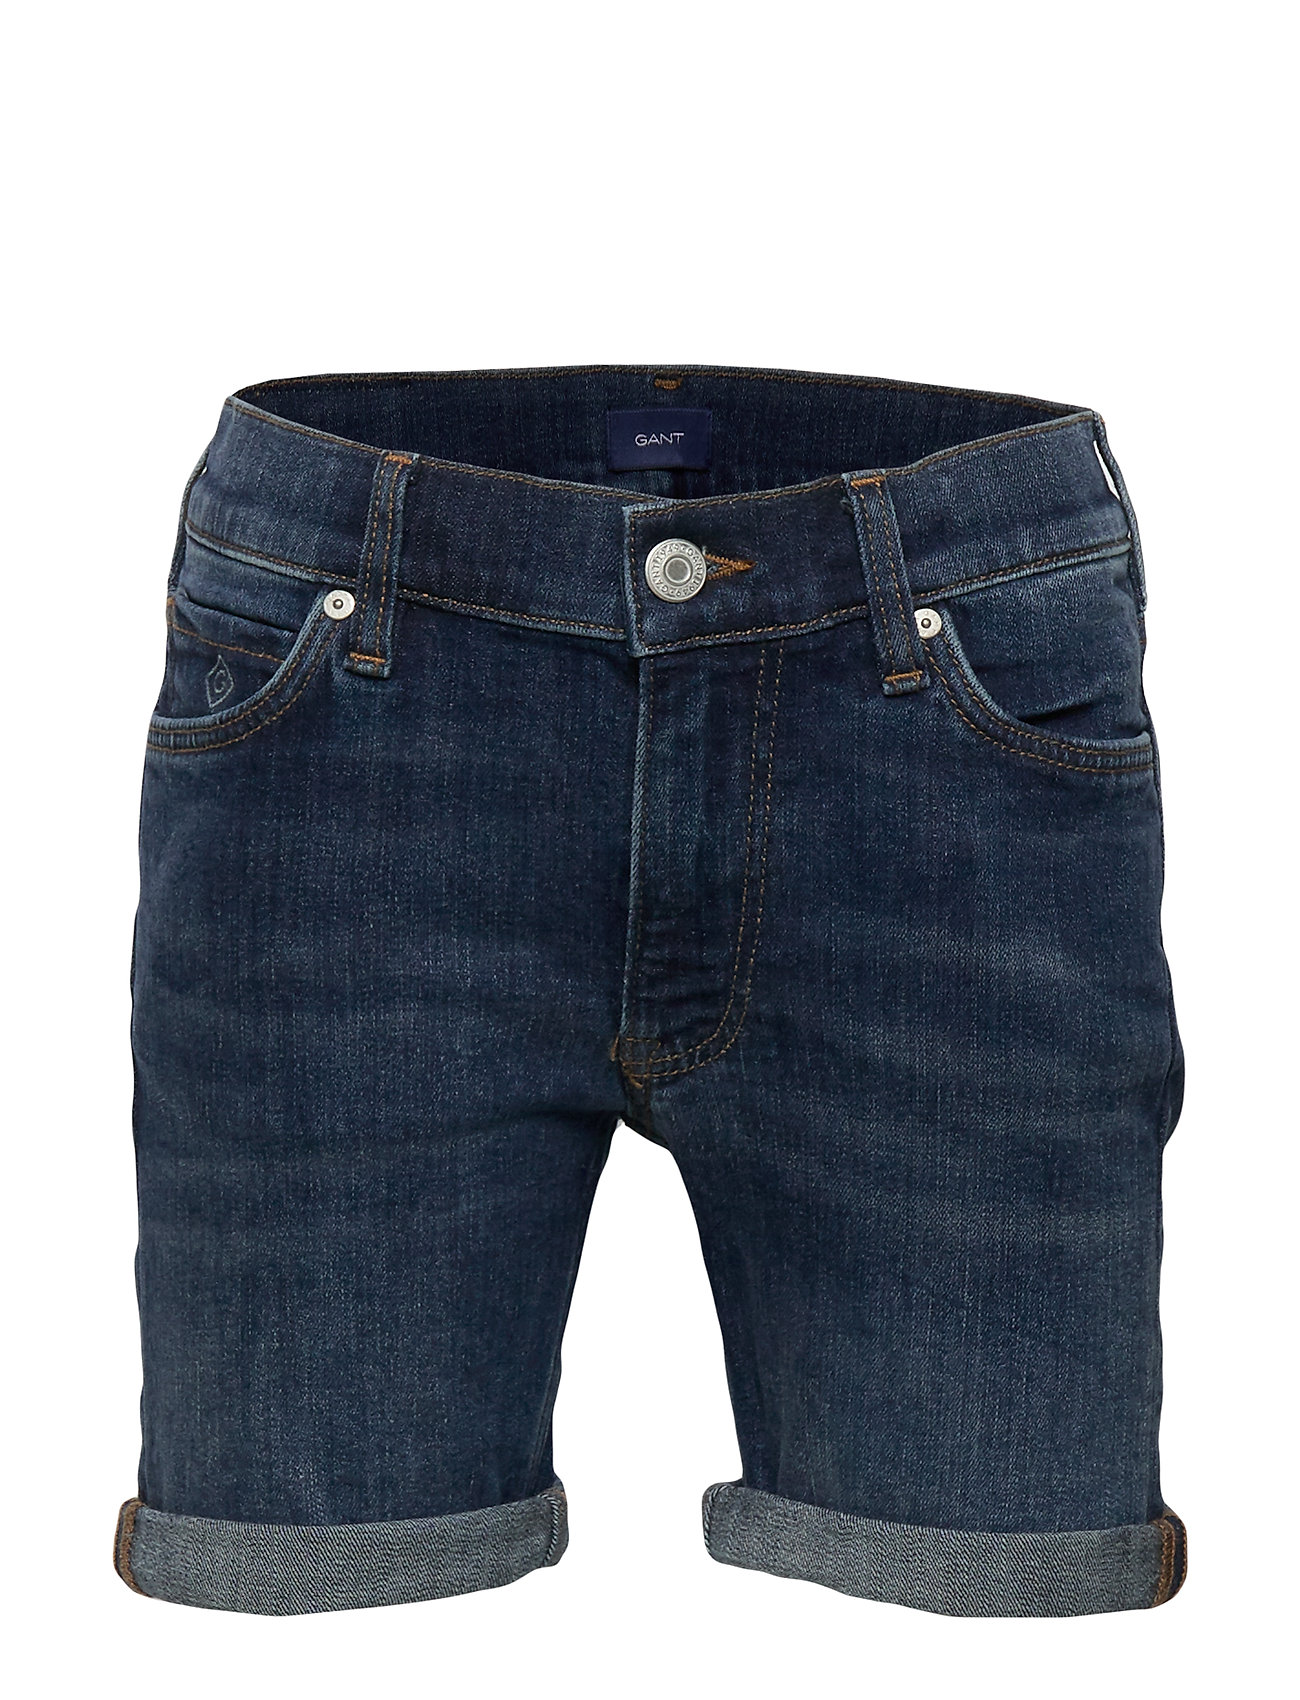 Gant D2. JEANS SHORTS - MID BLUE WORN IN